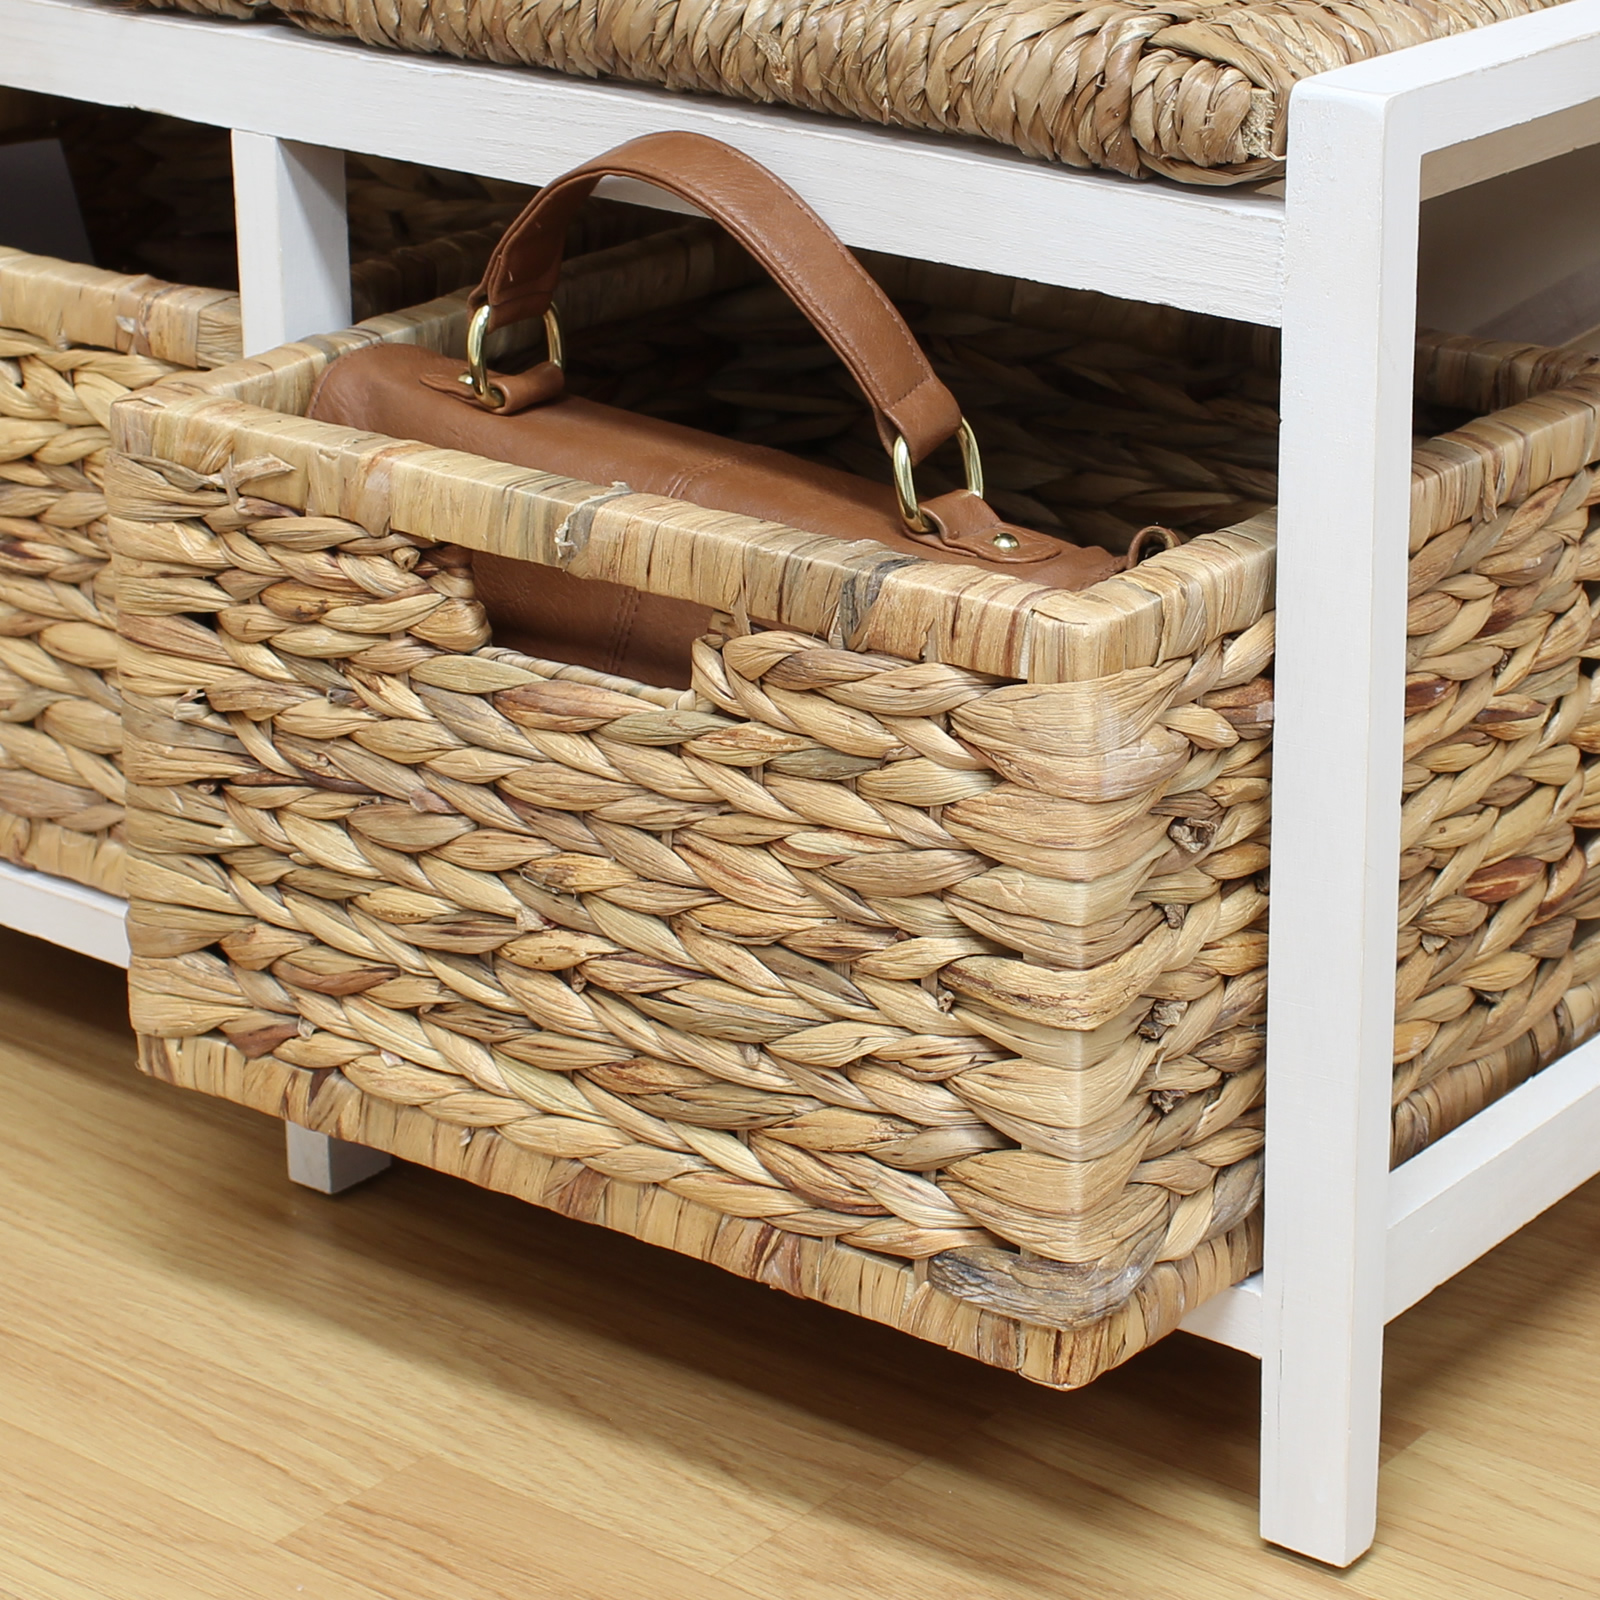 Hartleys Farmhouse Bench Seat & Storage Baskets Hallway Bathroom Wicker Cushion